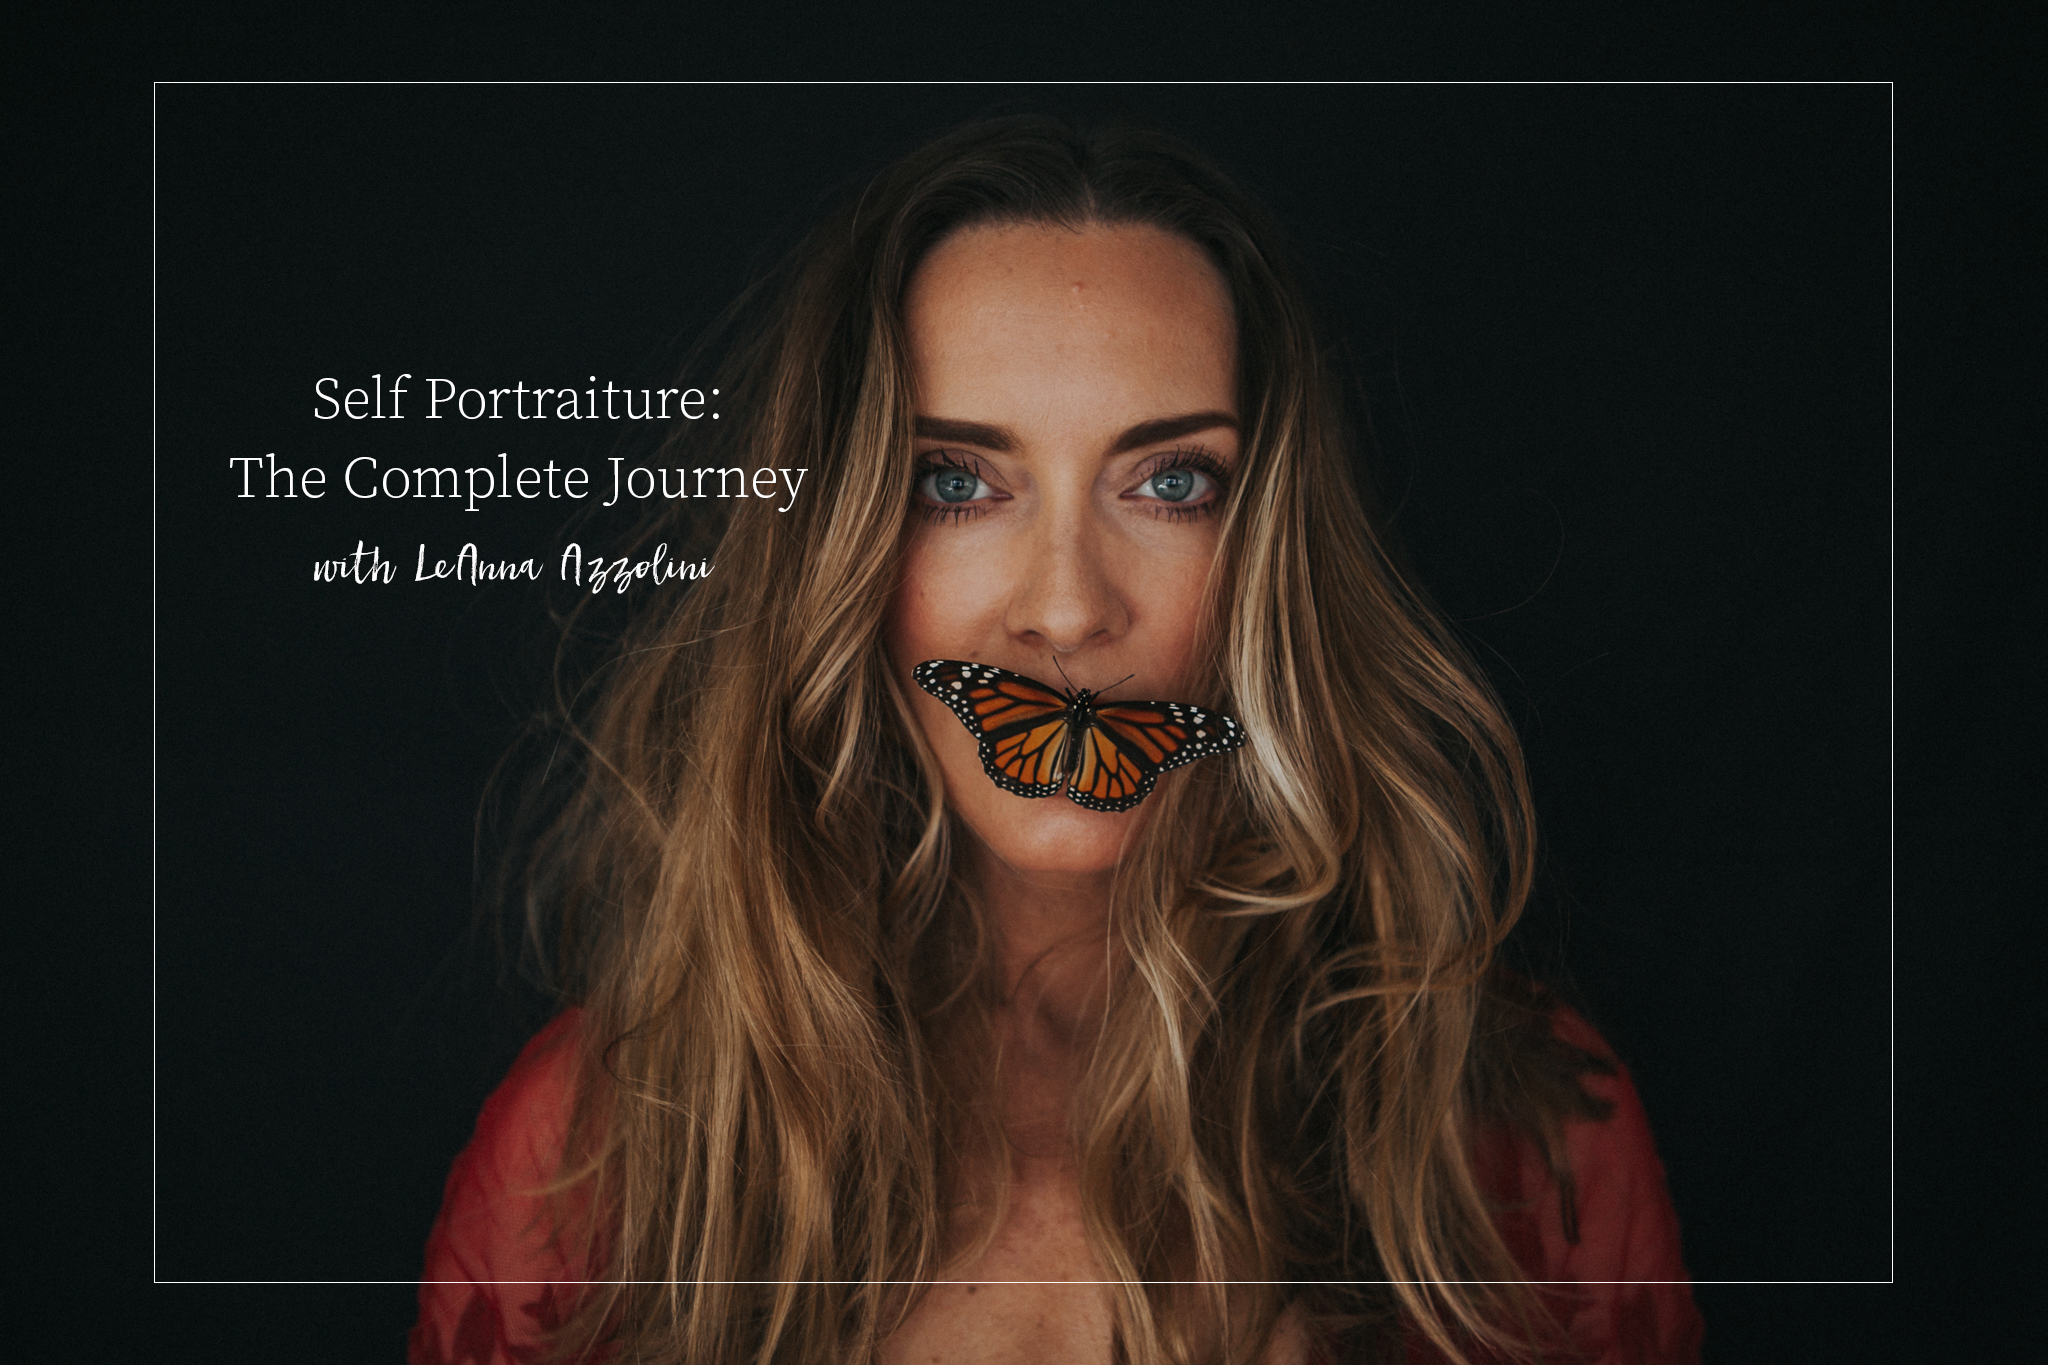 $10 Off! - Use Code: SP10OFFto get $10 off the Download & Go Course: Self Portraiture: The Creative Journey with Leanna Azzolini!